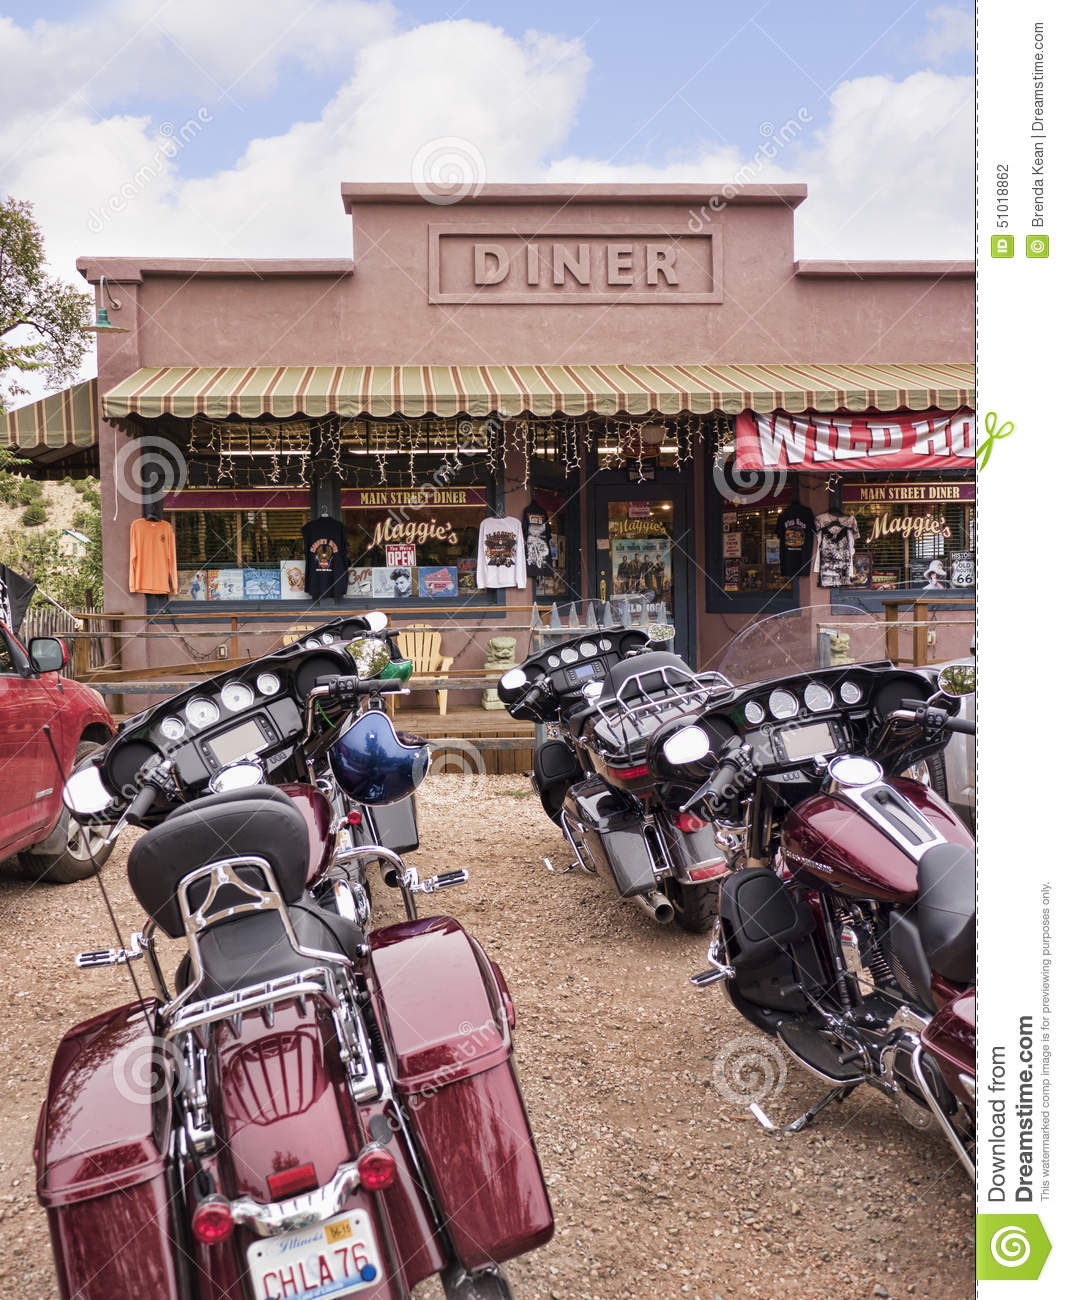 Ghost Town Madrid New Mexico Photos Free Royalty Free Stock Photos From Dreamstime